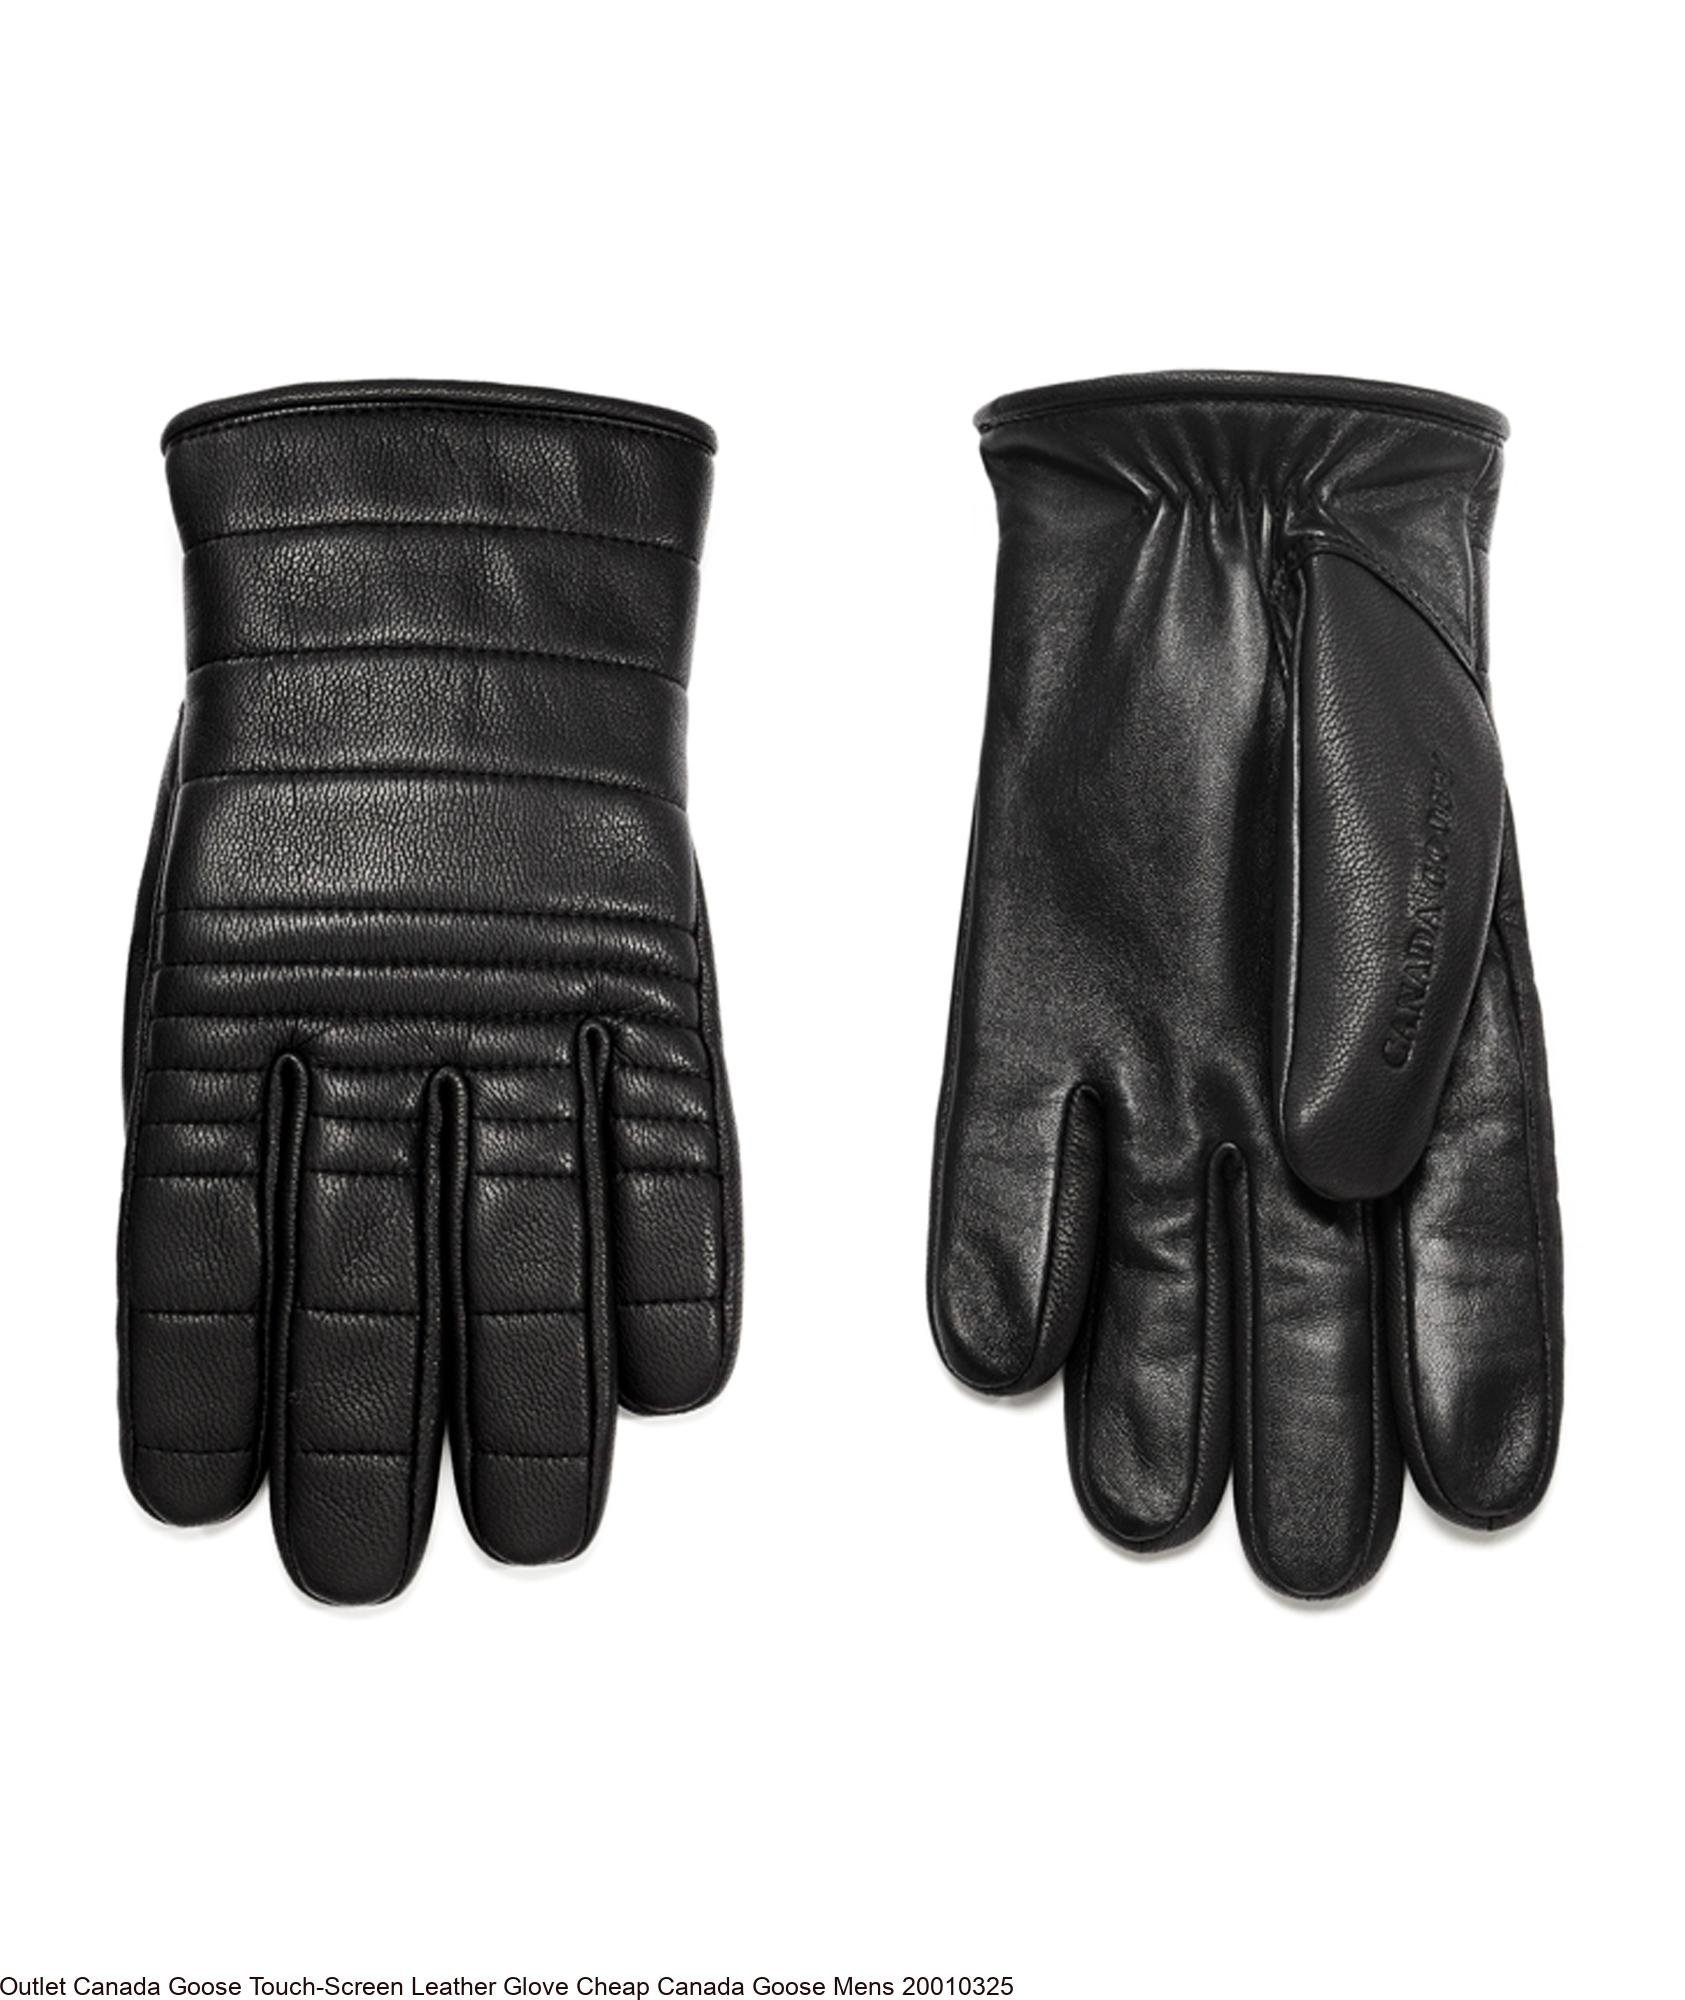 Outlet Canada Goose Touch Screen Leather Glove Cheap Canada Goose Mens 20010325